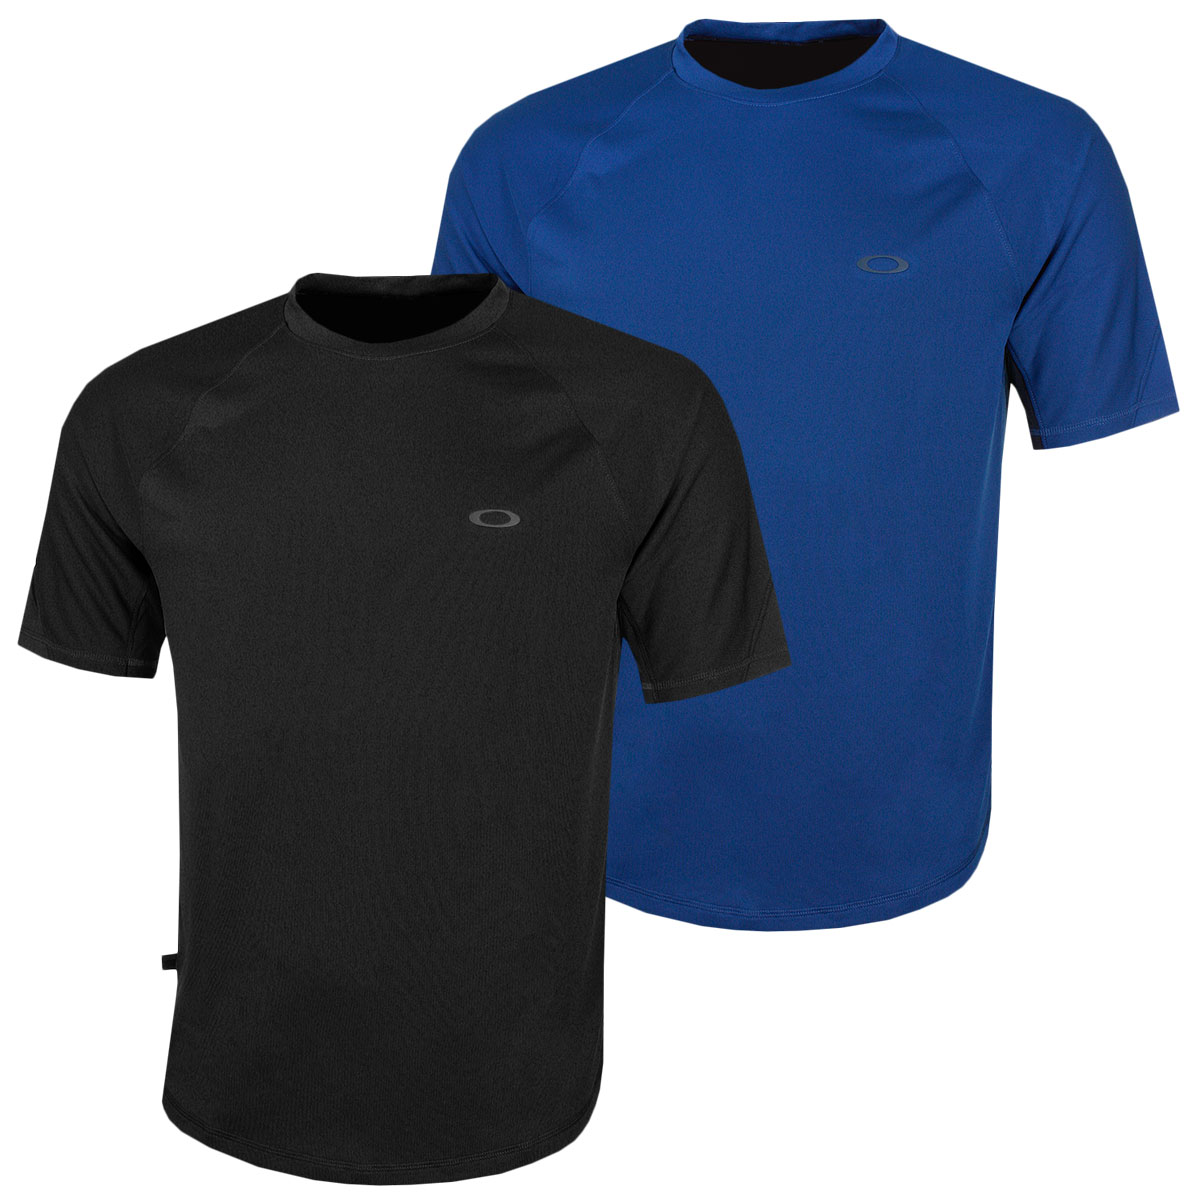 d087068d3b56a Details about Oakley Mens Tech Knit Breathable Performance Reflective T- Shirt 40% OFF RRP